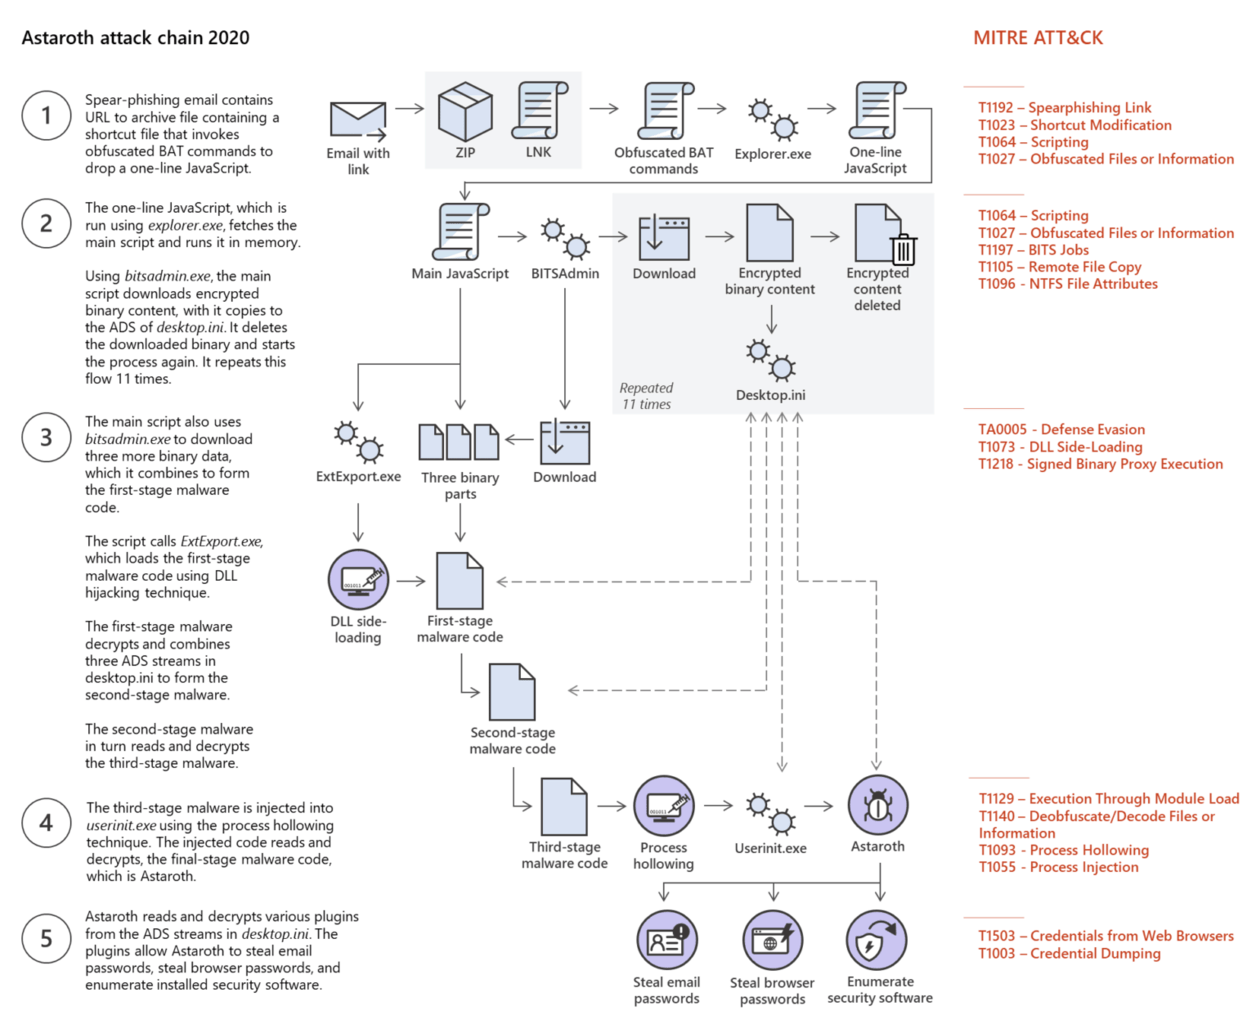 Astaroth malware operation flow